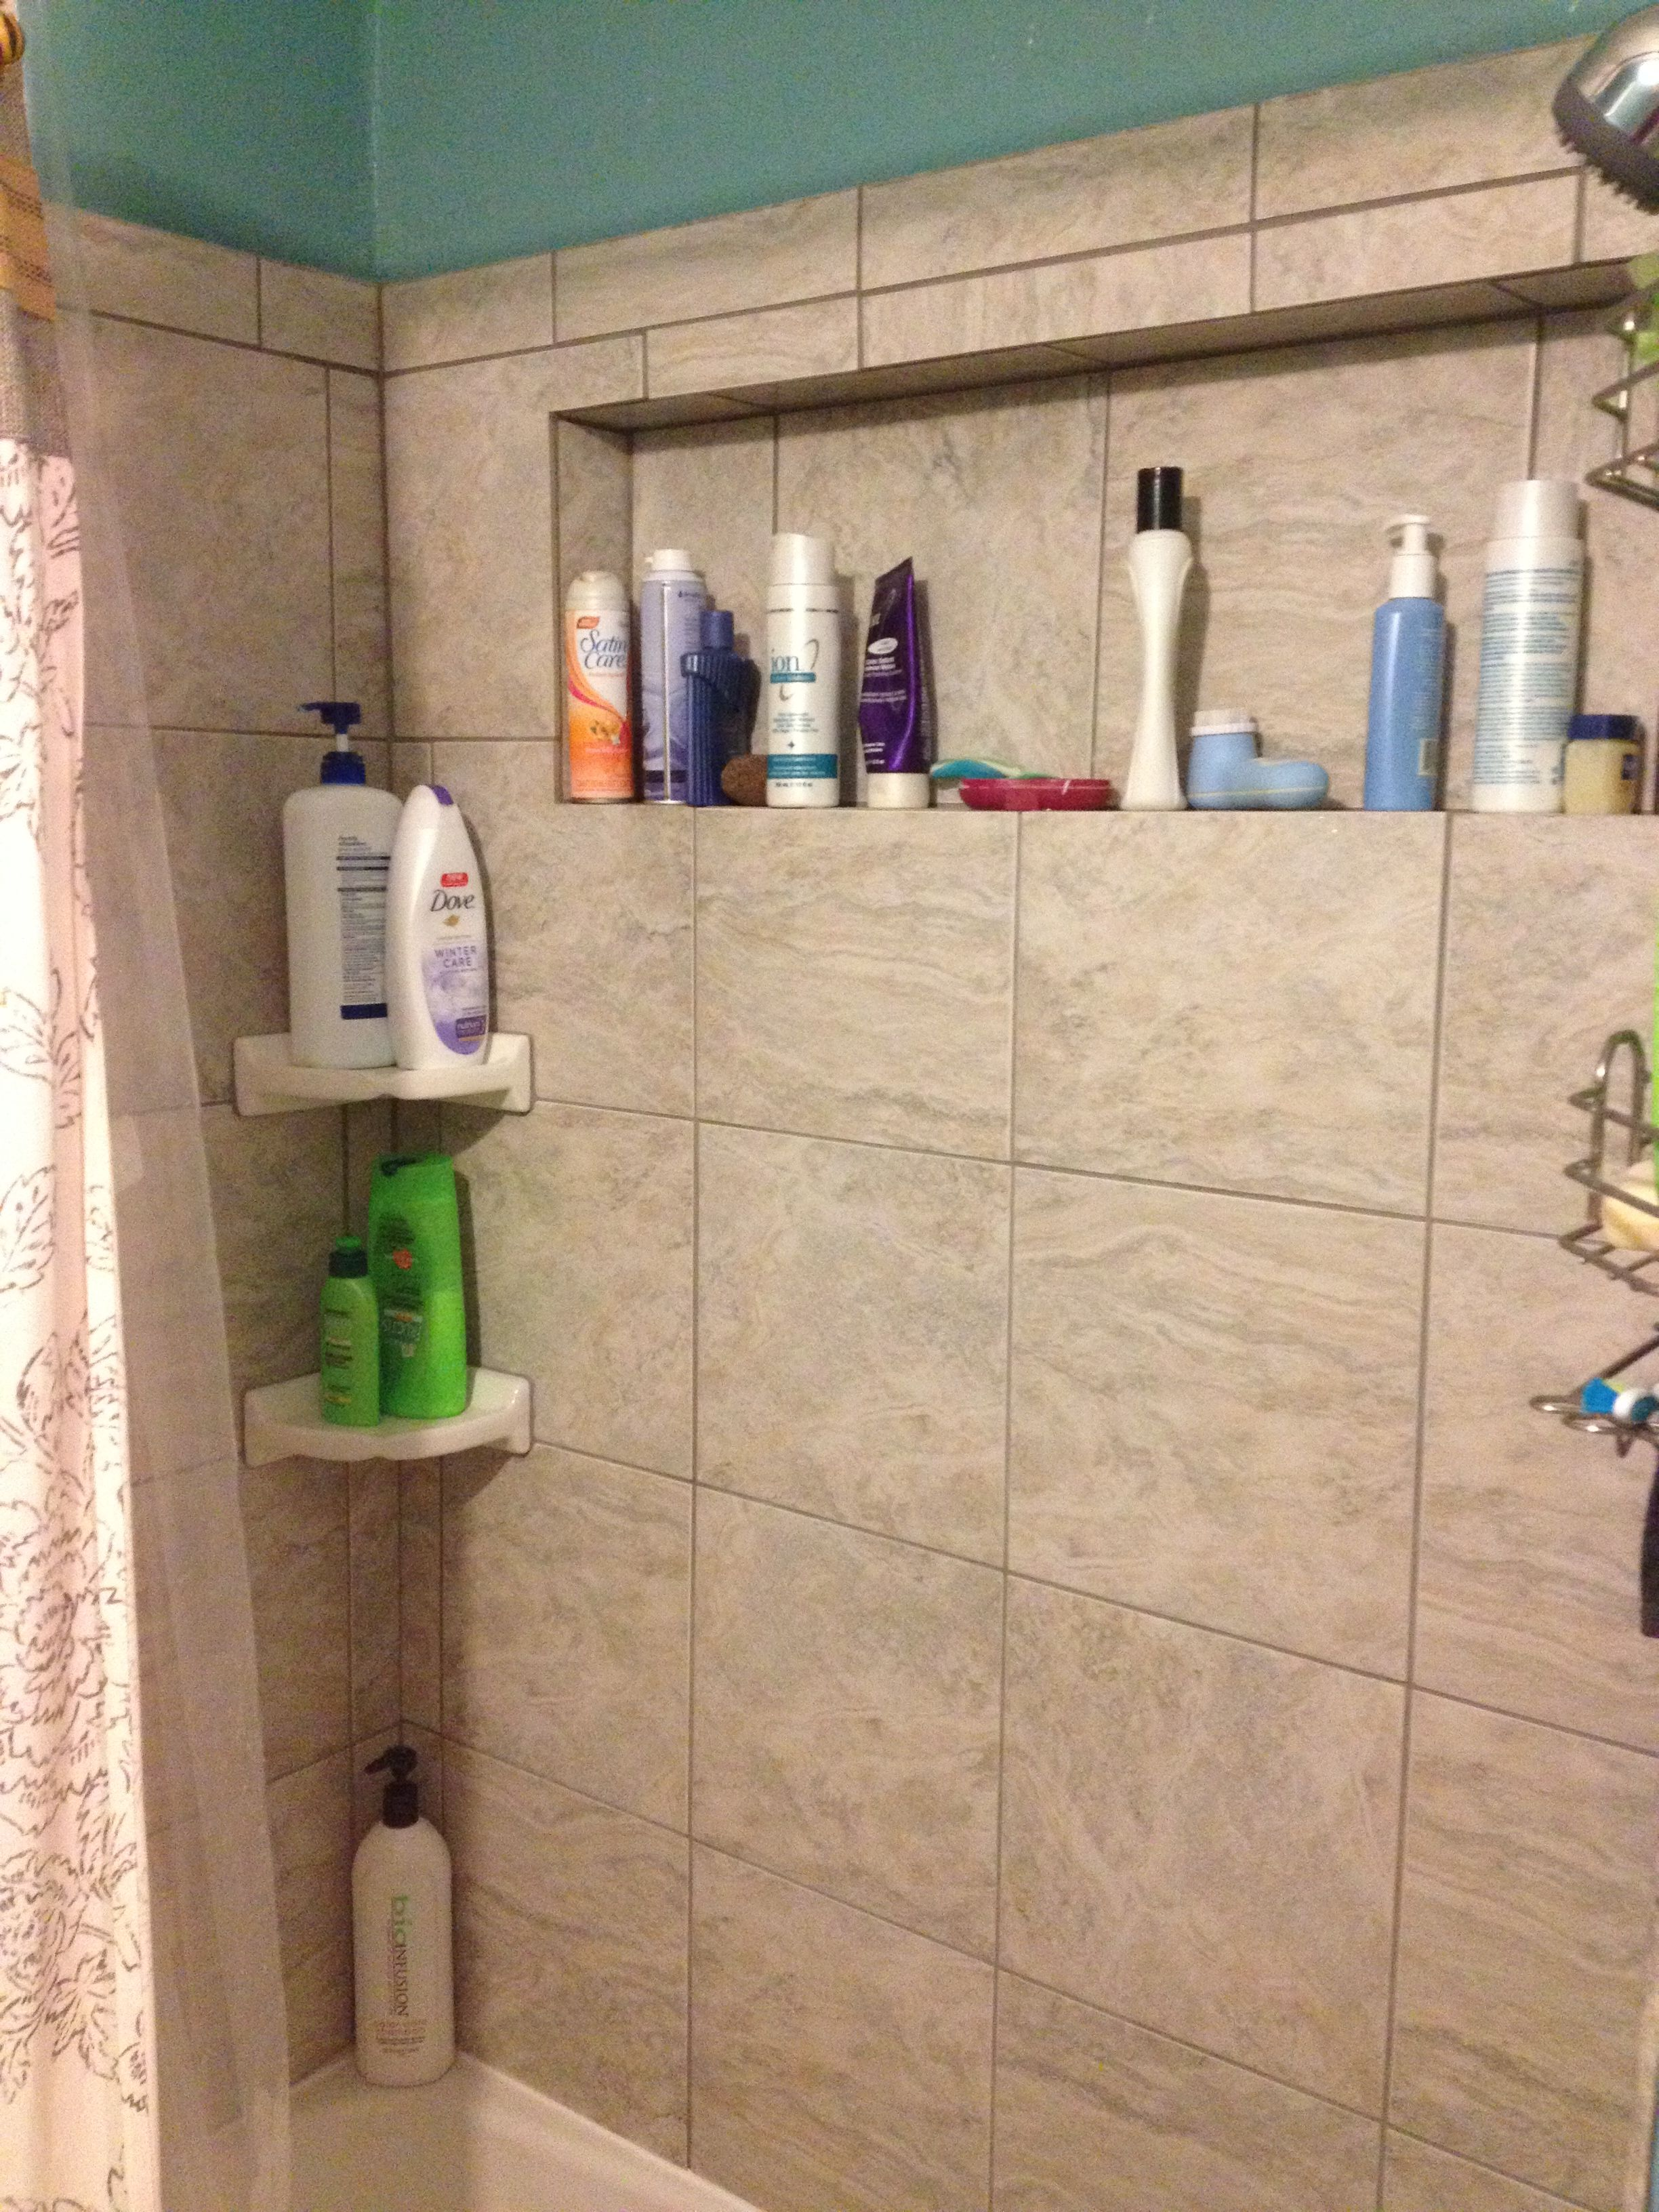 Bathtub Surround: Due to a smaller bathroom, I went with a 54 inch ...